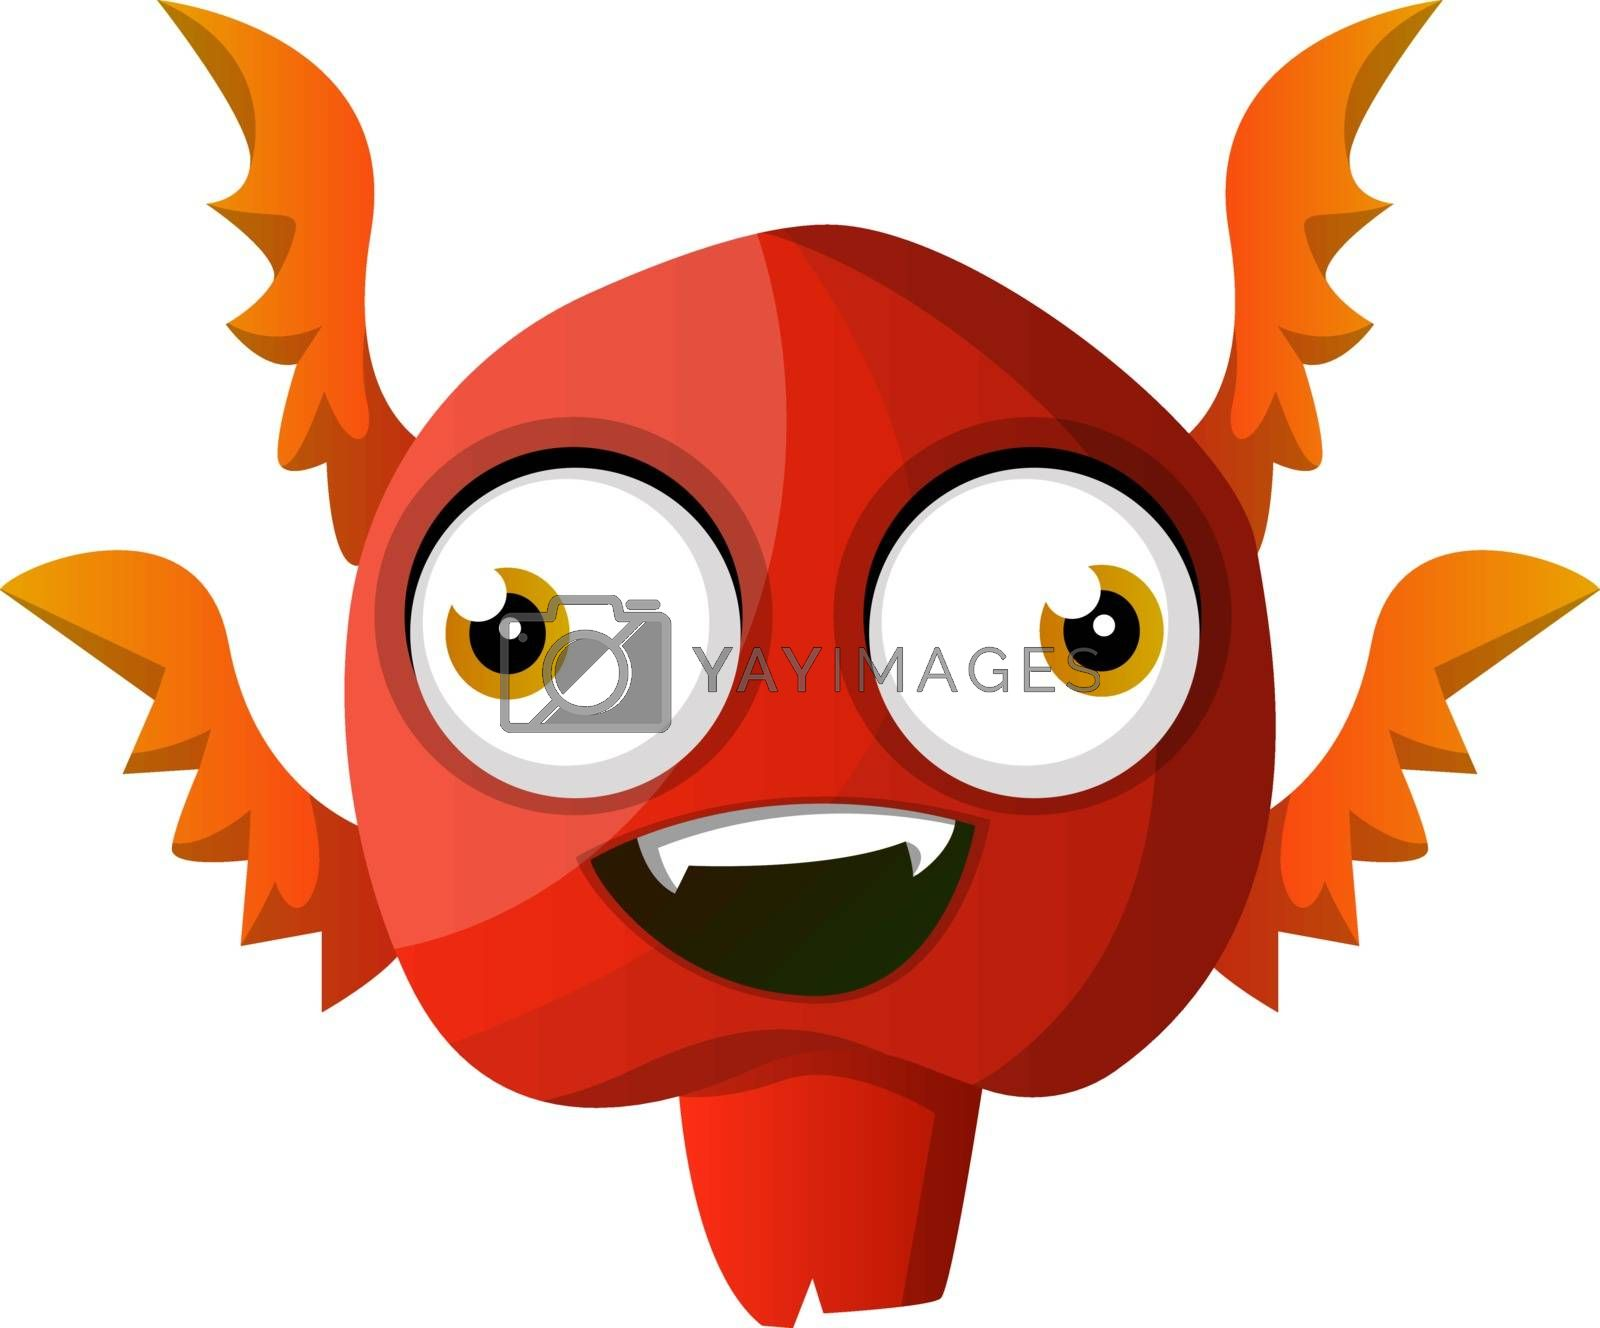 Royalty free image of Red smiling monster illustration vector on white background by Morphart